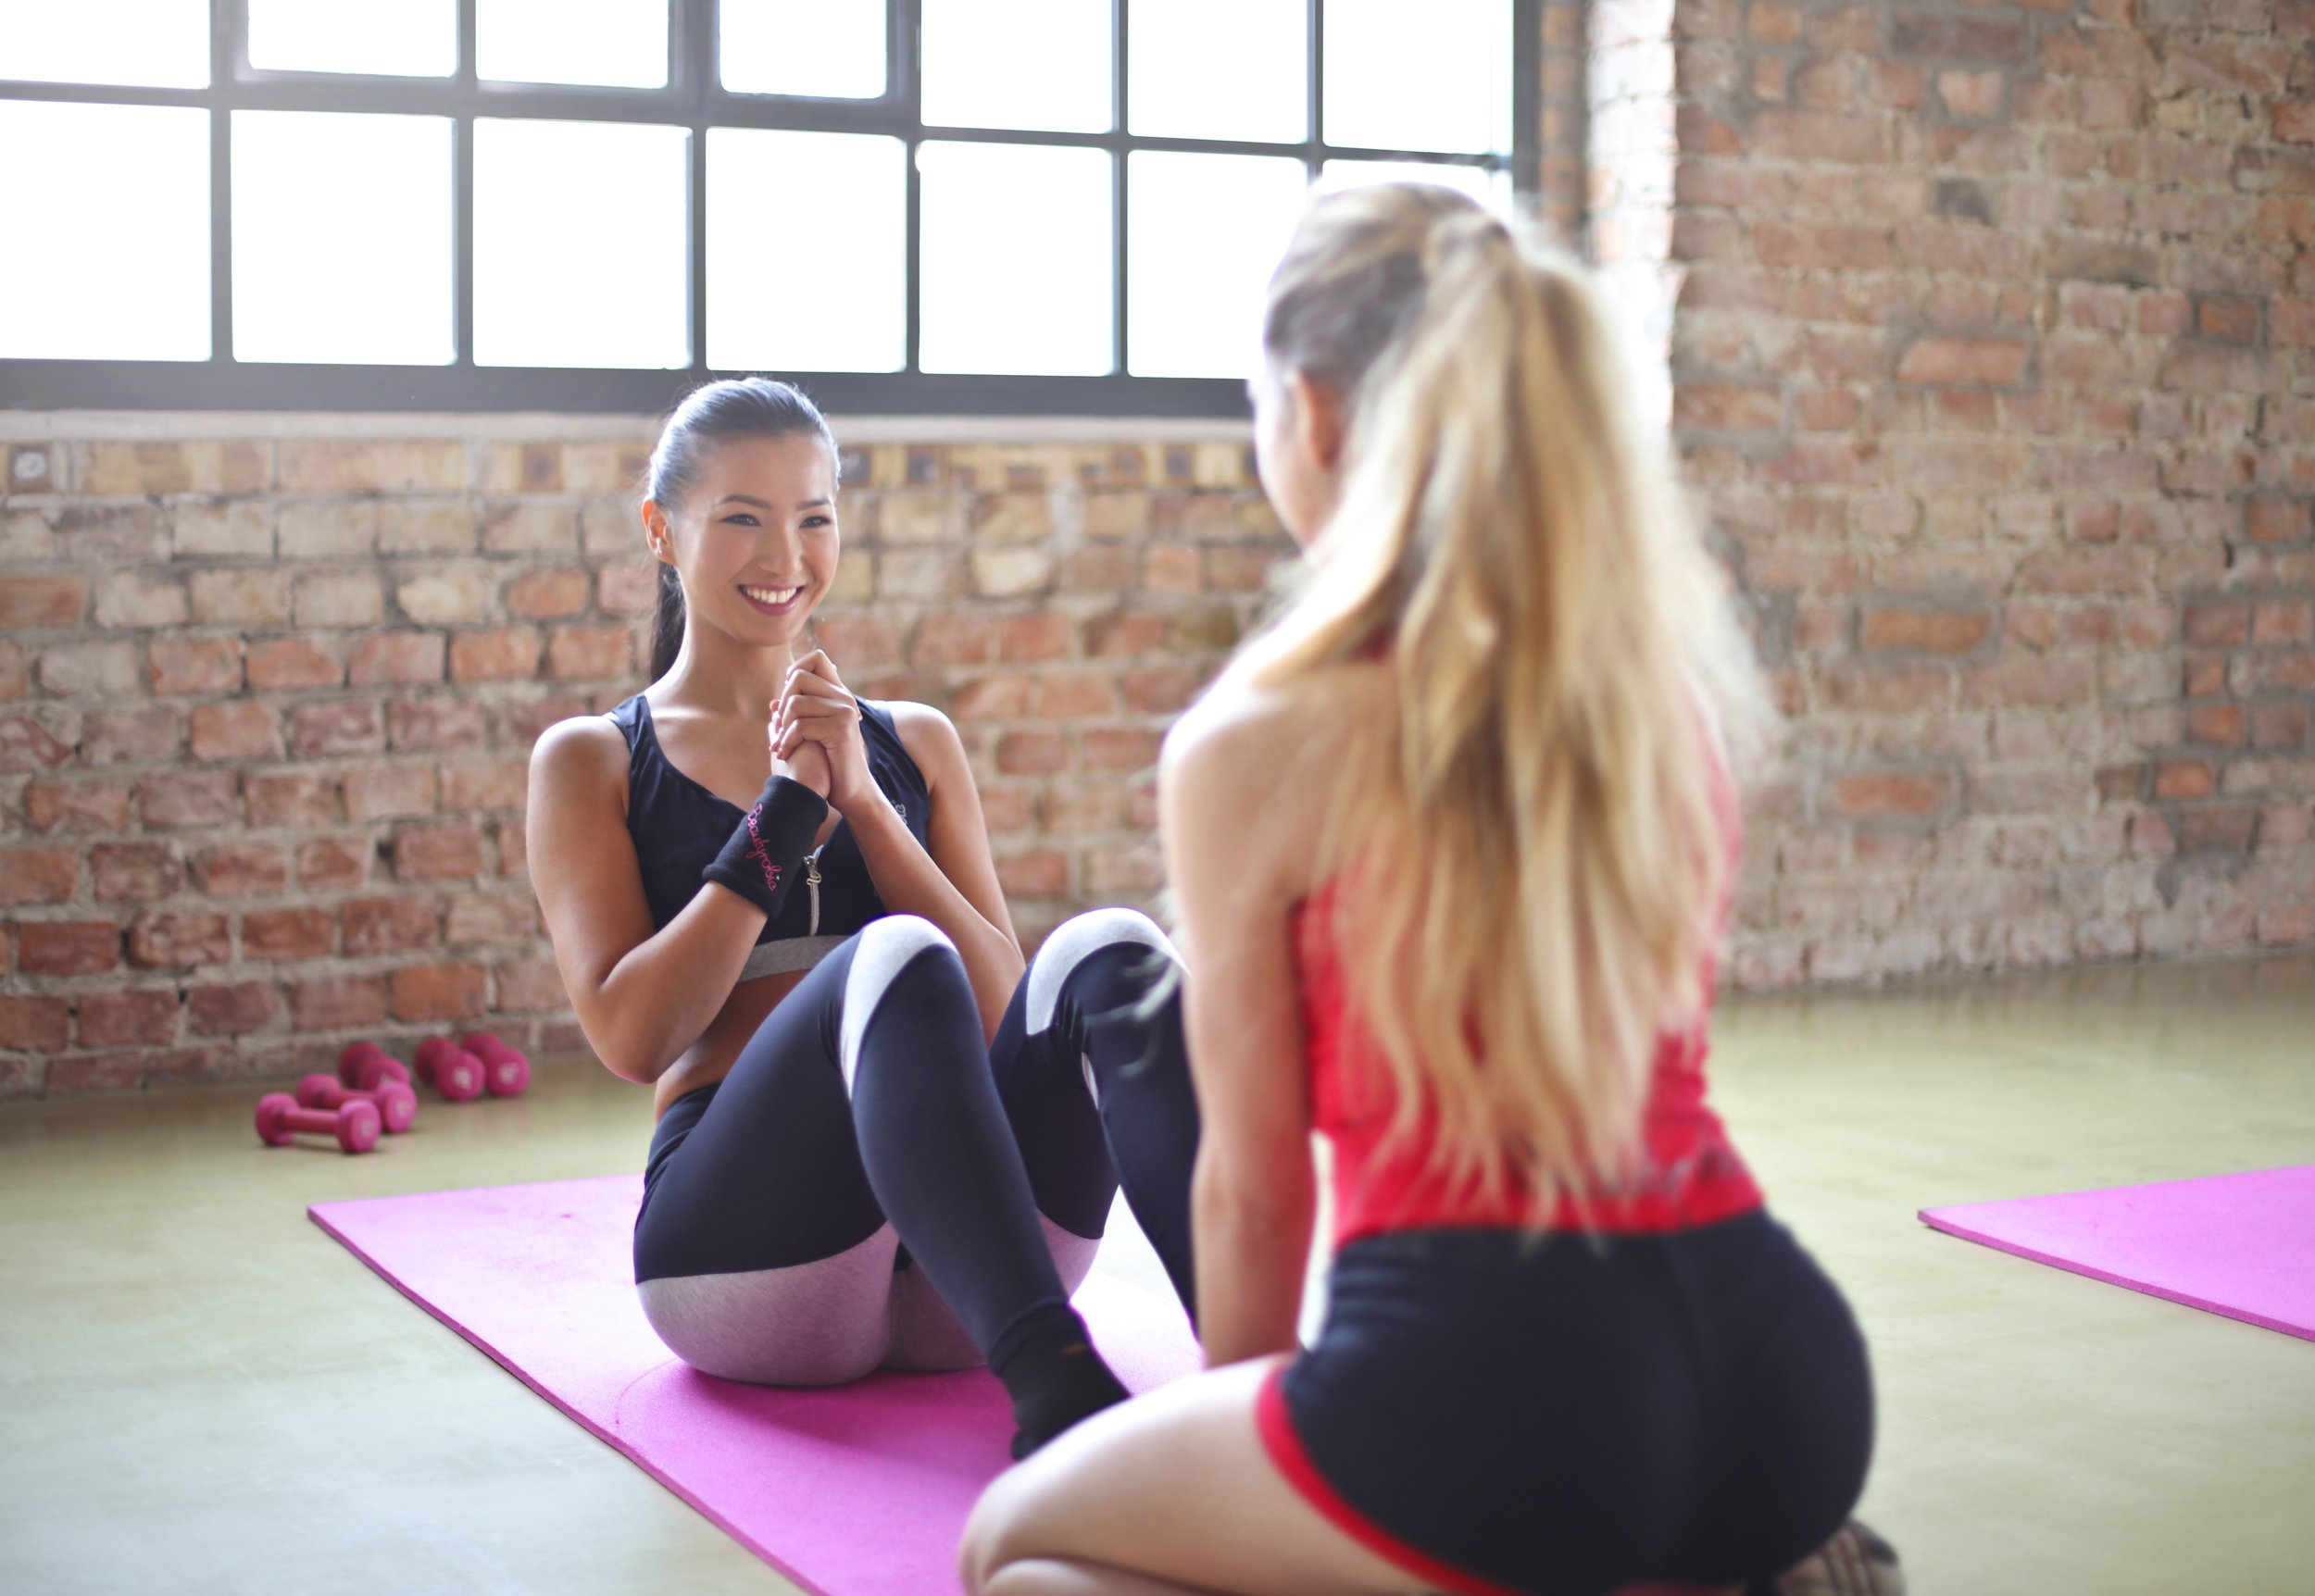 Step and Core - Step & Core takes the traditional step class to the next level. It incorporates high intensity step training routines with an effective core workout to blast the abs. Shift your fat burning workout routine up a gear.Duration - 45mins